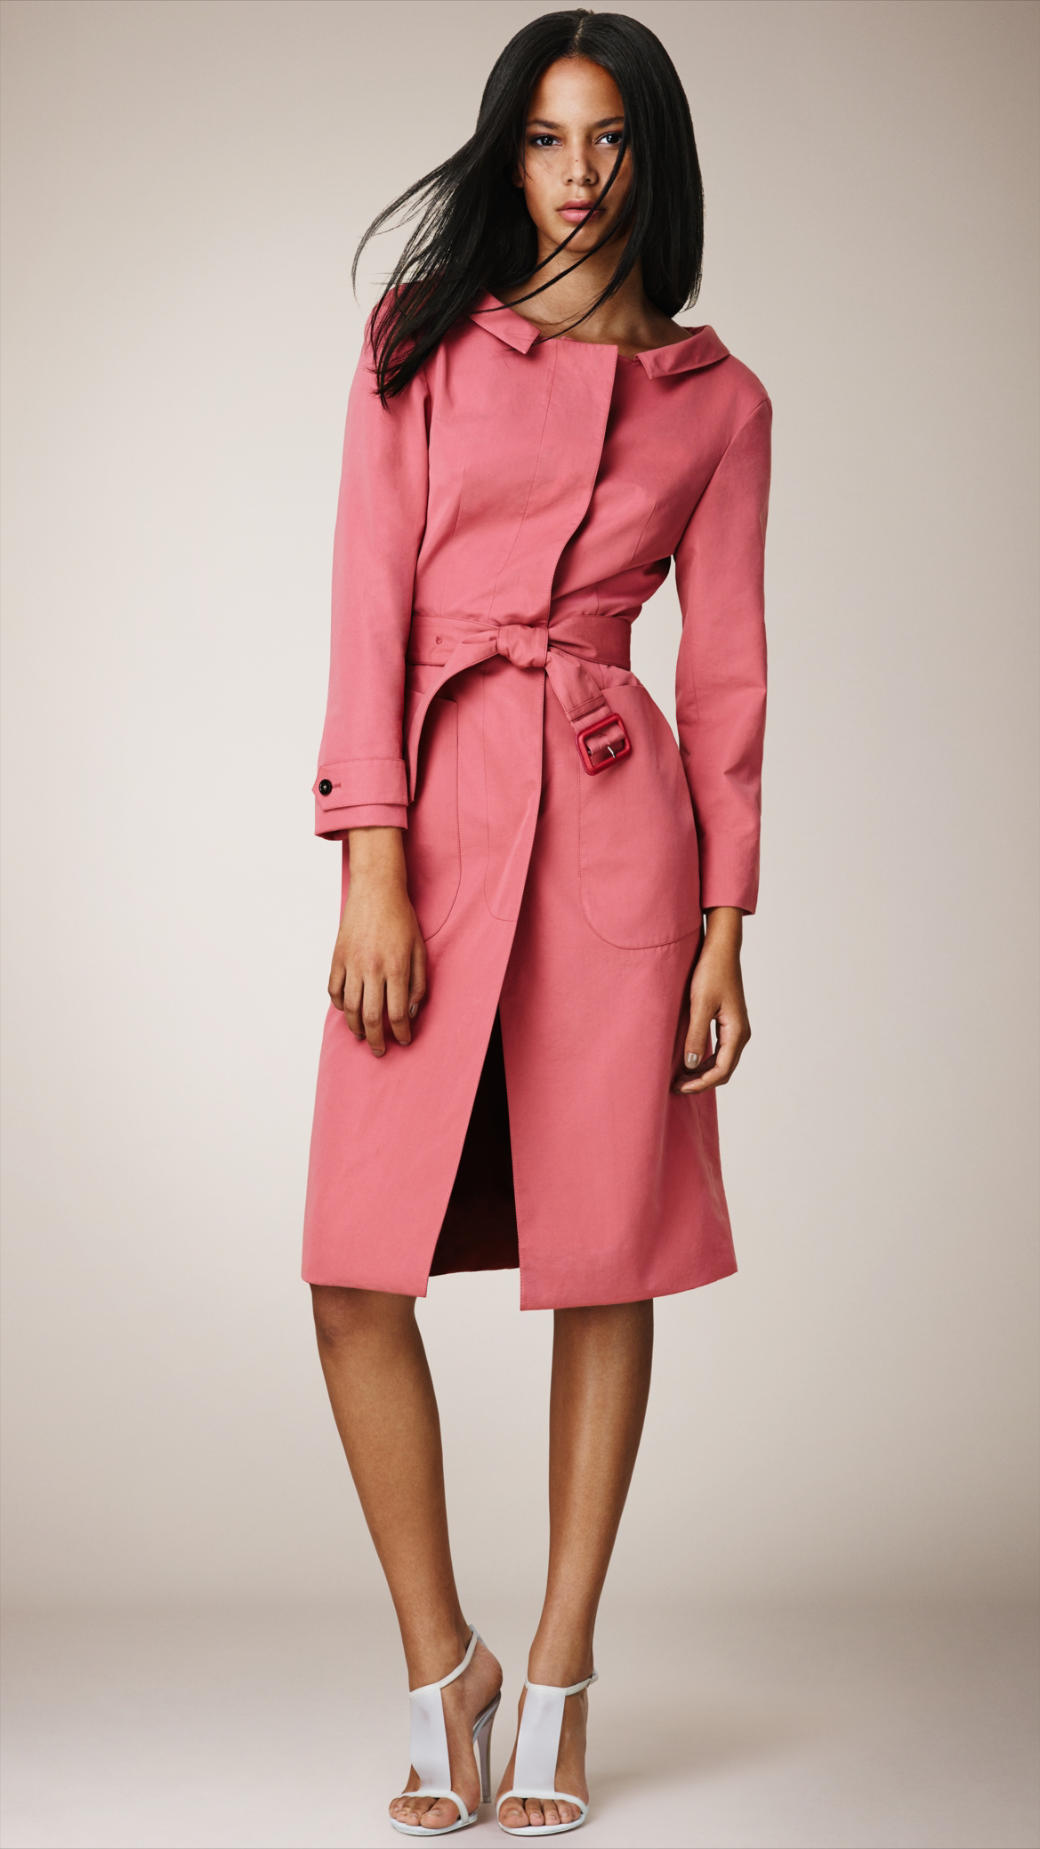 Burberry Dipped Collar Dress Coat in Pink | Lyst